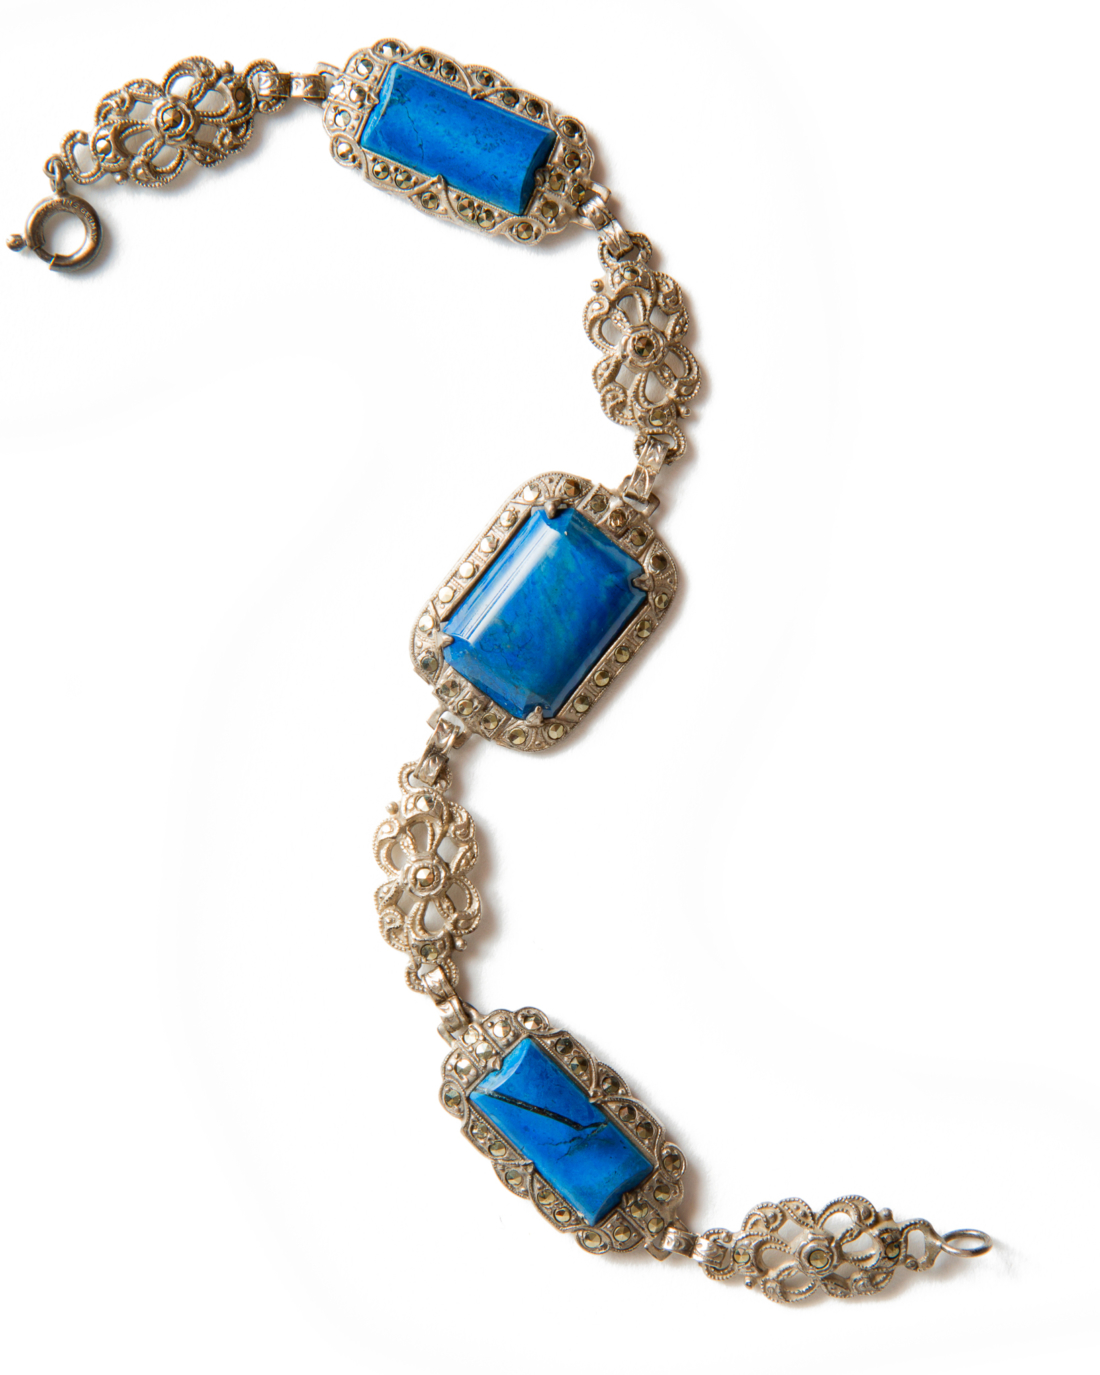 Art Deco Sterling Silver, Lapis, and Marcasite Bracelet, circa 1920's